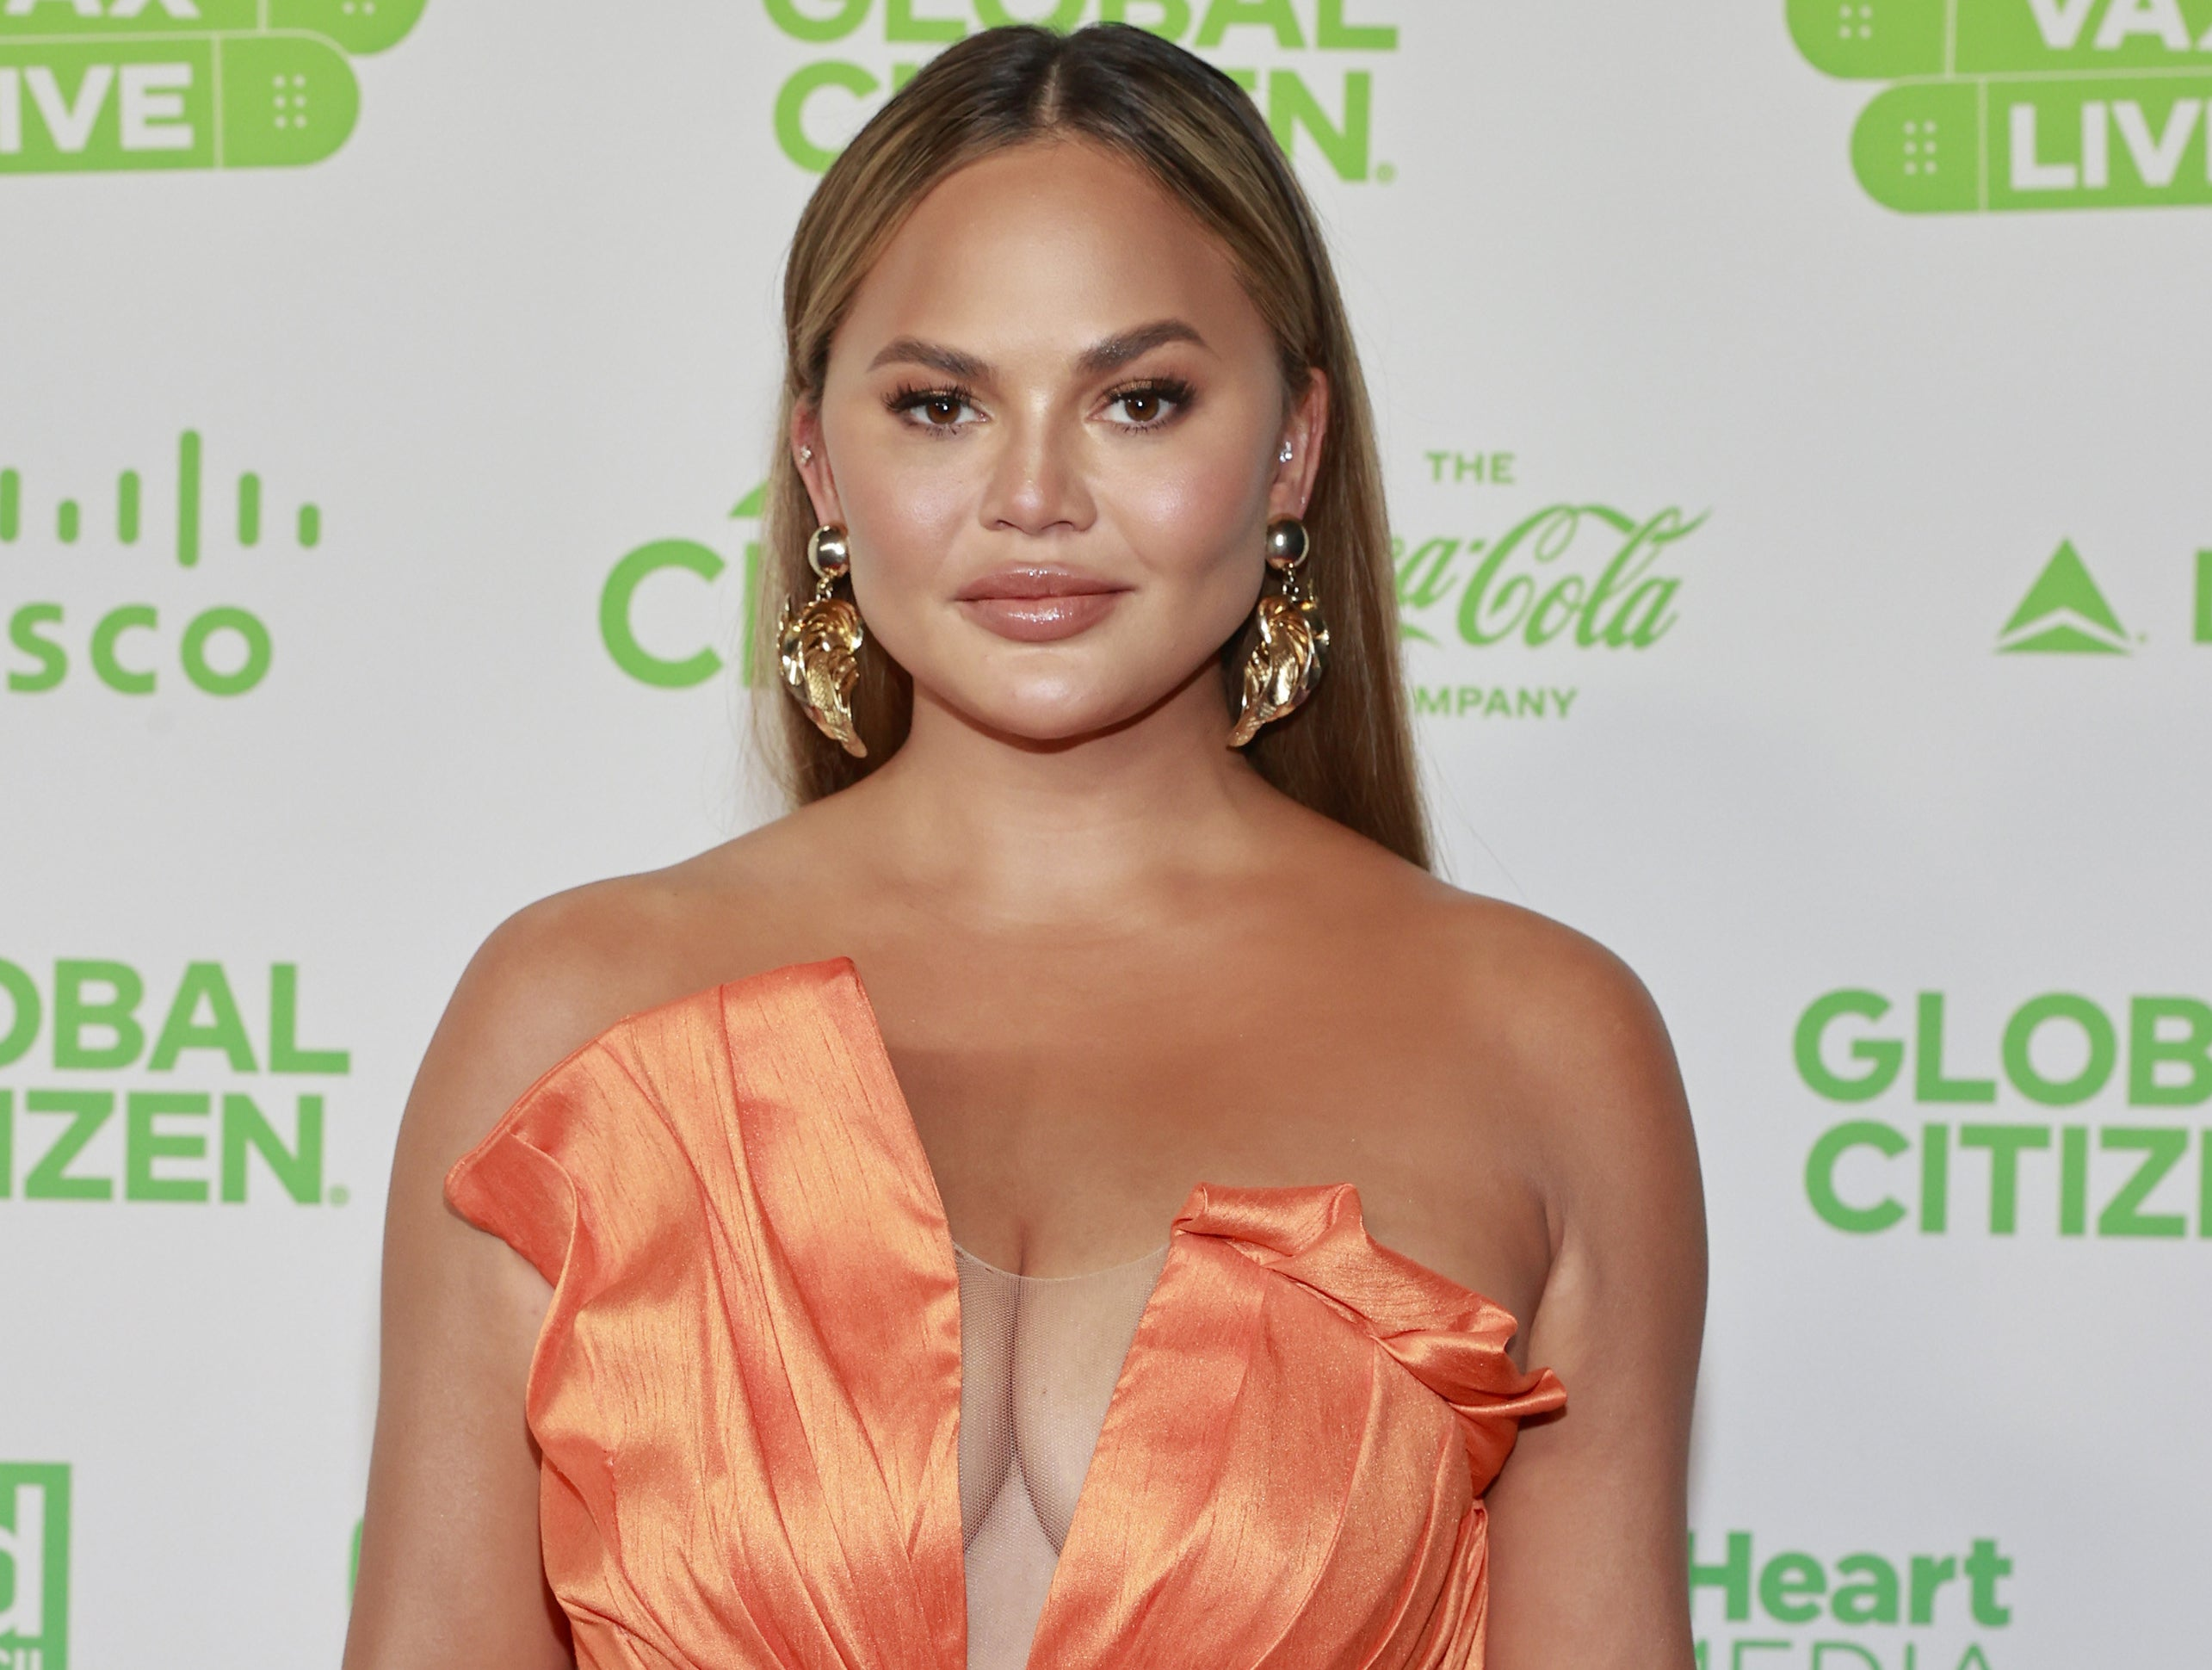 Chrissy wears a strapless orange dress to a recent event